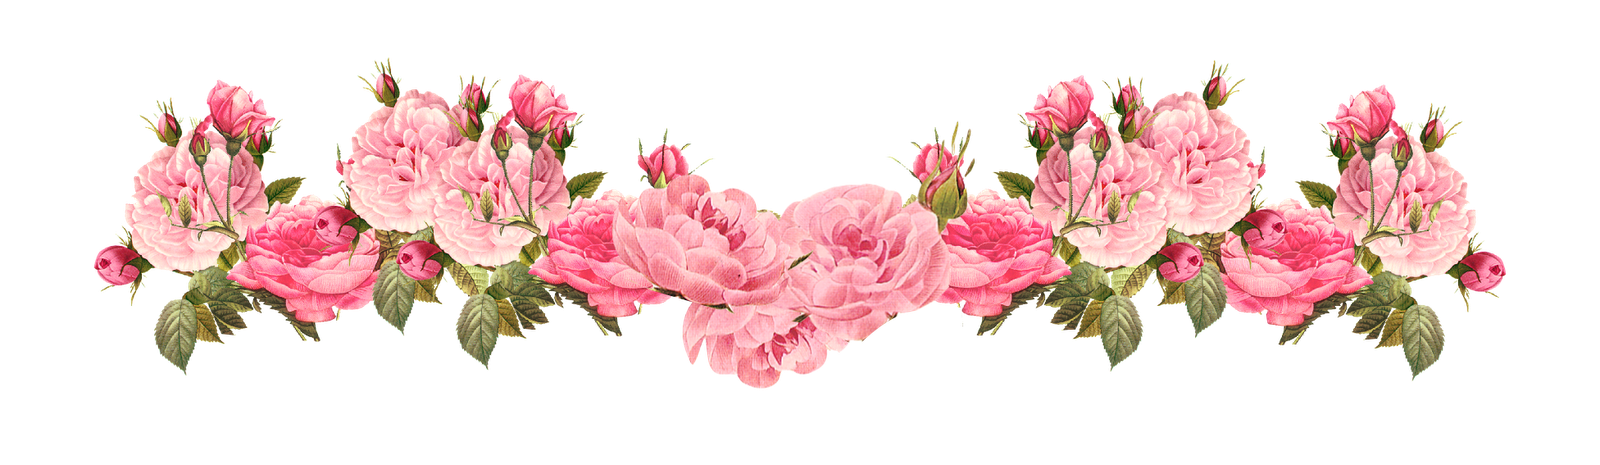 Roses clipart shabby chic. Vintage pink free rose